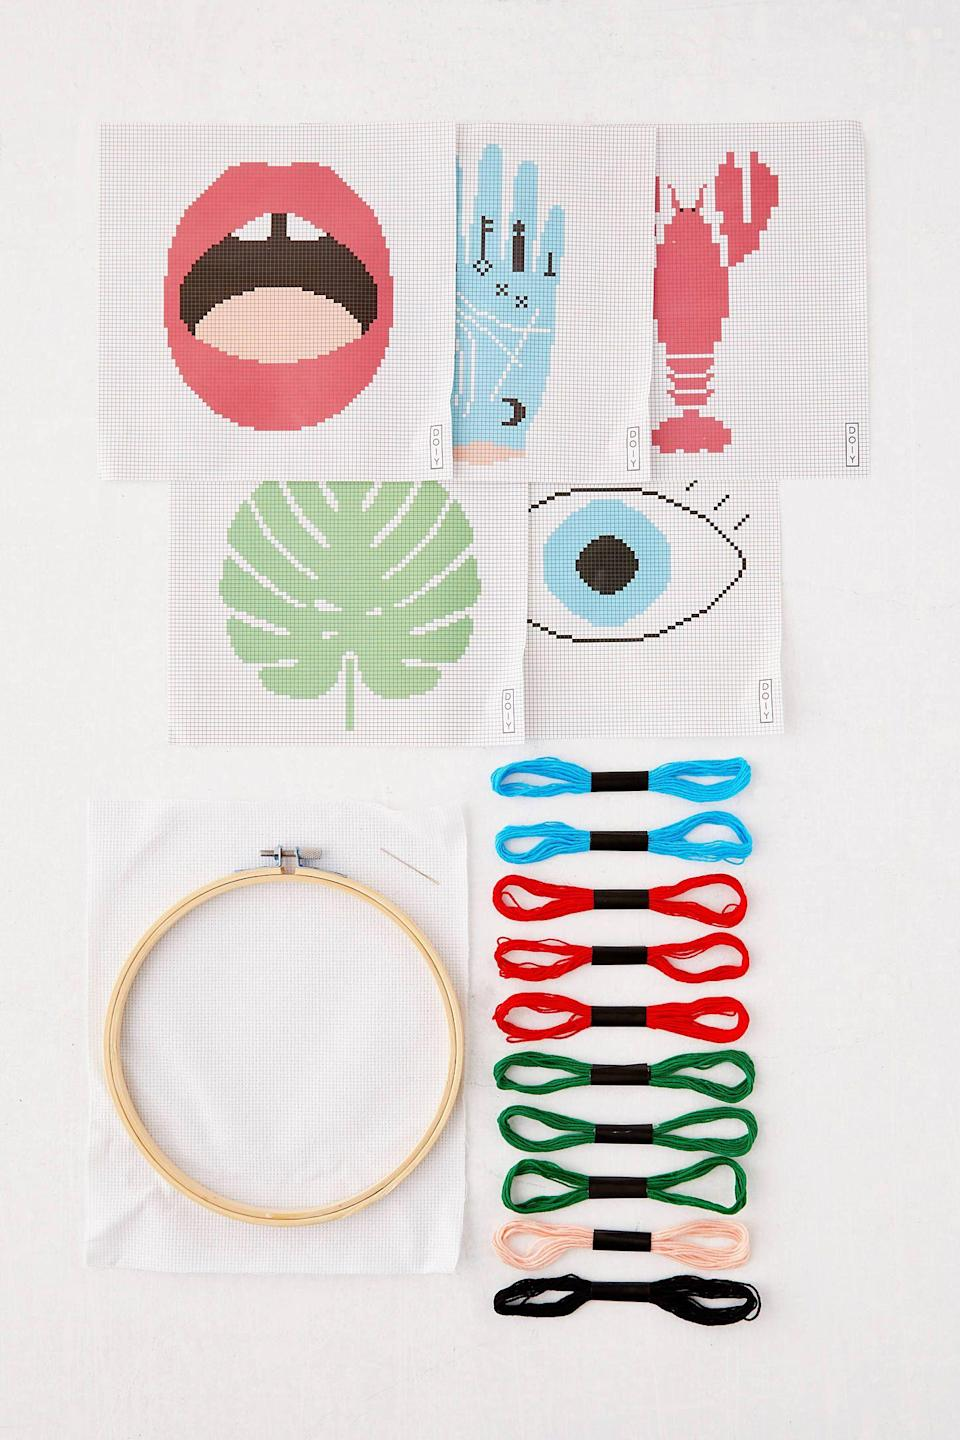 """<p><strong>Urban Outfitters</strong></p><p>urbanoutfitters.com</p><p><strong>$18.00</strong></p><p><a href=""""https://go.redirectingat.com?id=74968X1596630&url=https%3A%2F%2Fwww.urbanoutfitters.com%2Fshop%2Fstitch-it-diy-cross-stitch-kit&sref=https%3A%2F%2Fwww.cosmopolitan.com%2Flifestyle%2Fg32815611%2Fcare-package-ideas%2F"""" rel=""""nofollow noopener"""" target=""""_blank"""" data-ylk=""""slk:Shop Now"""" class=""""link rapid-noclick-resp"""">Shop Now</a></p><p>If the social meds have your crew feeling off, help them detox with this fun, non-screen related activity. The best part? It's pretty!</p>"""